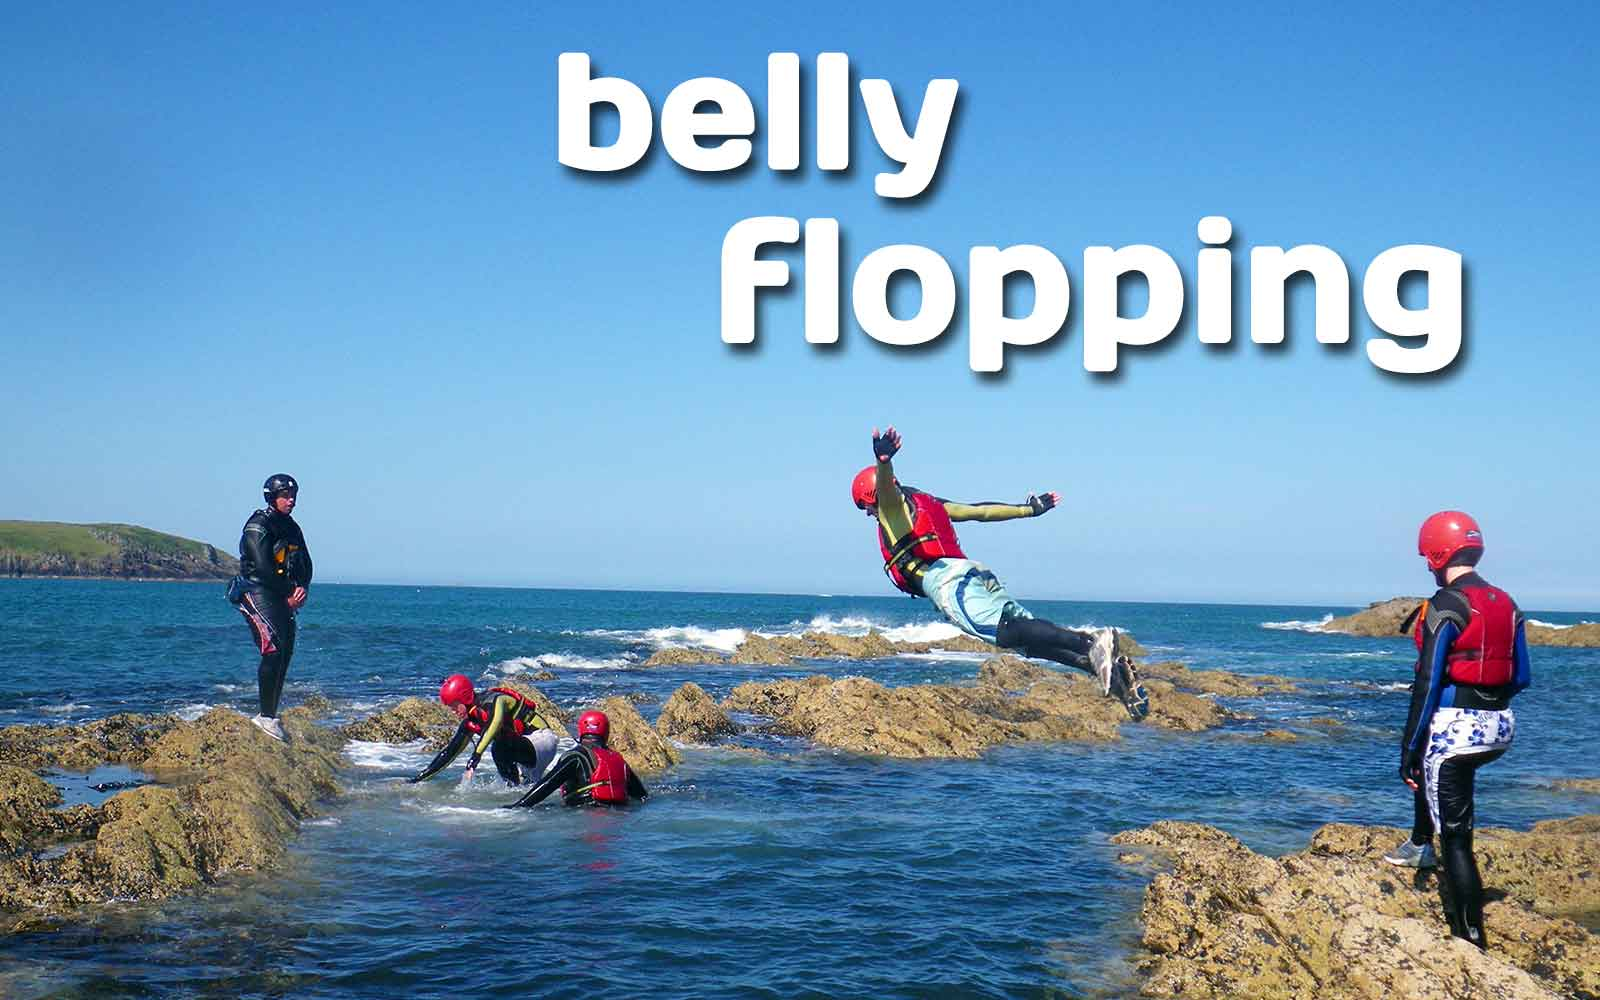 Belly flopping from the lower cliff ledges into Wales' sea on the Pembrokeshire coast